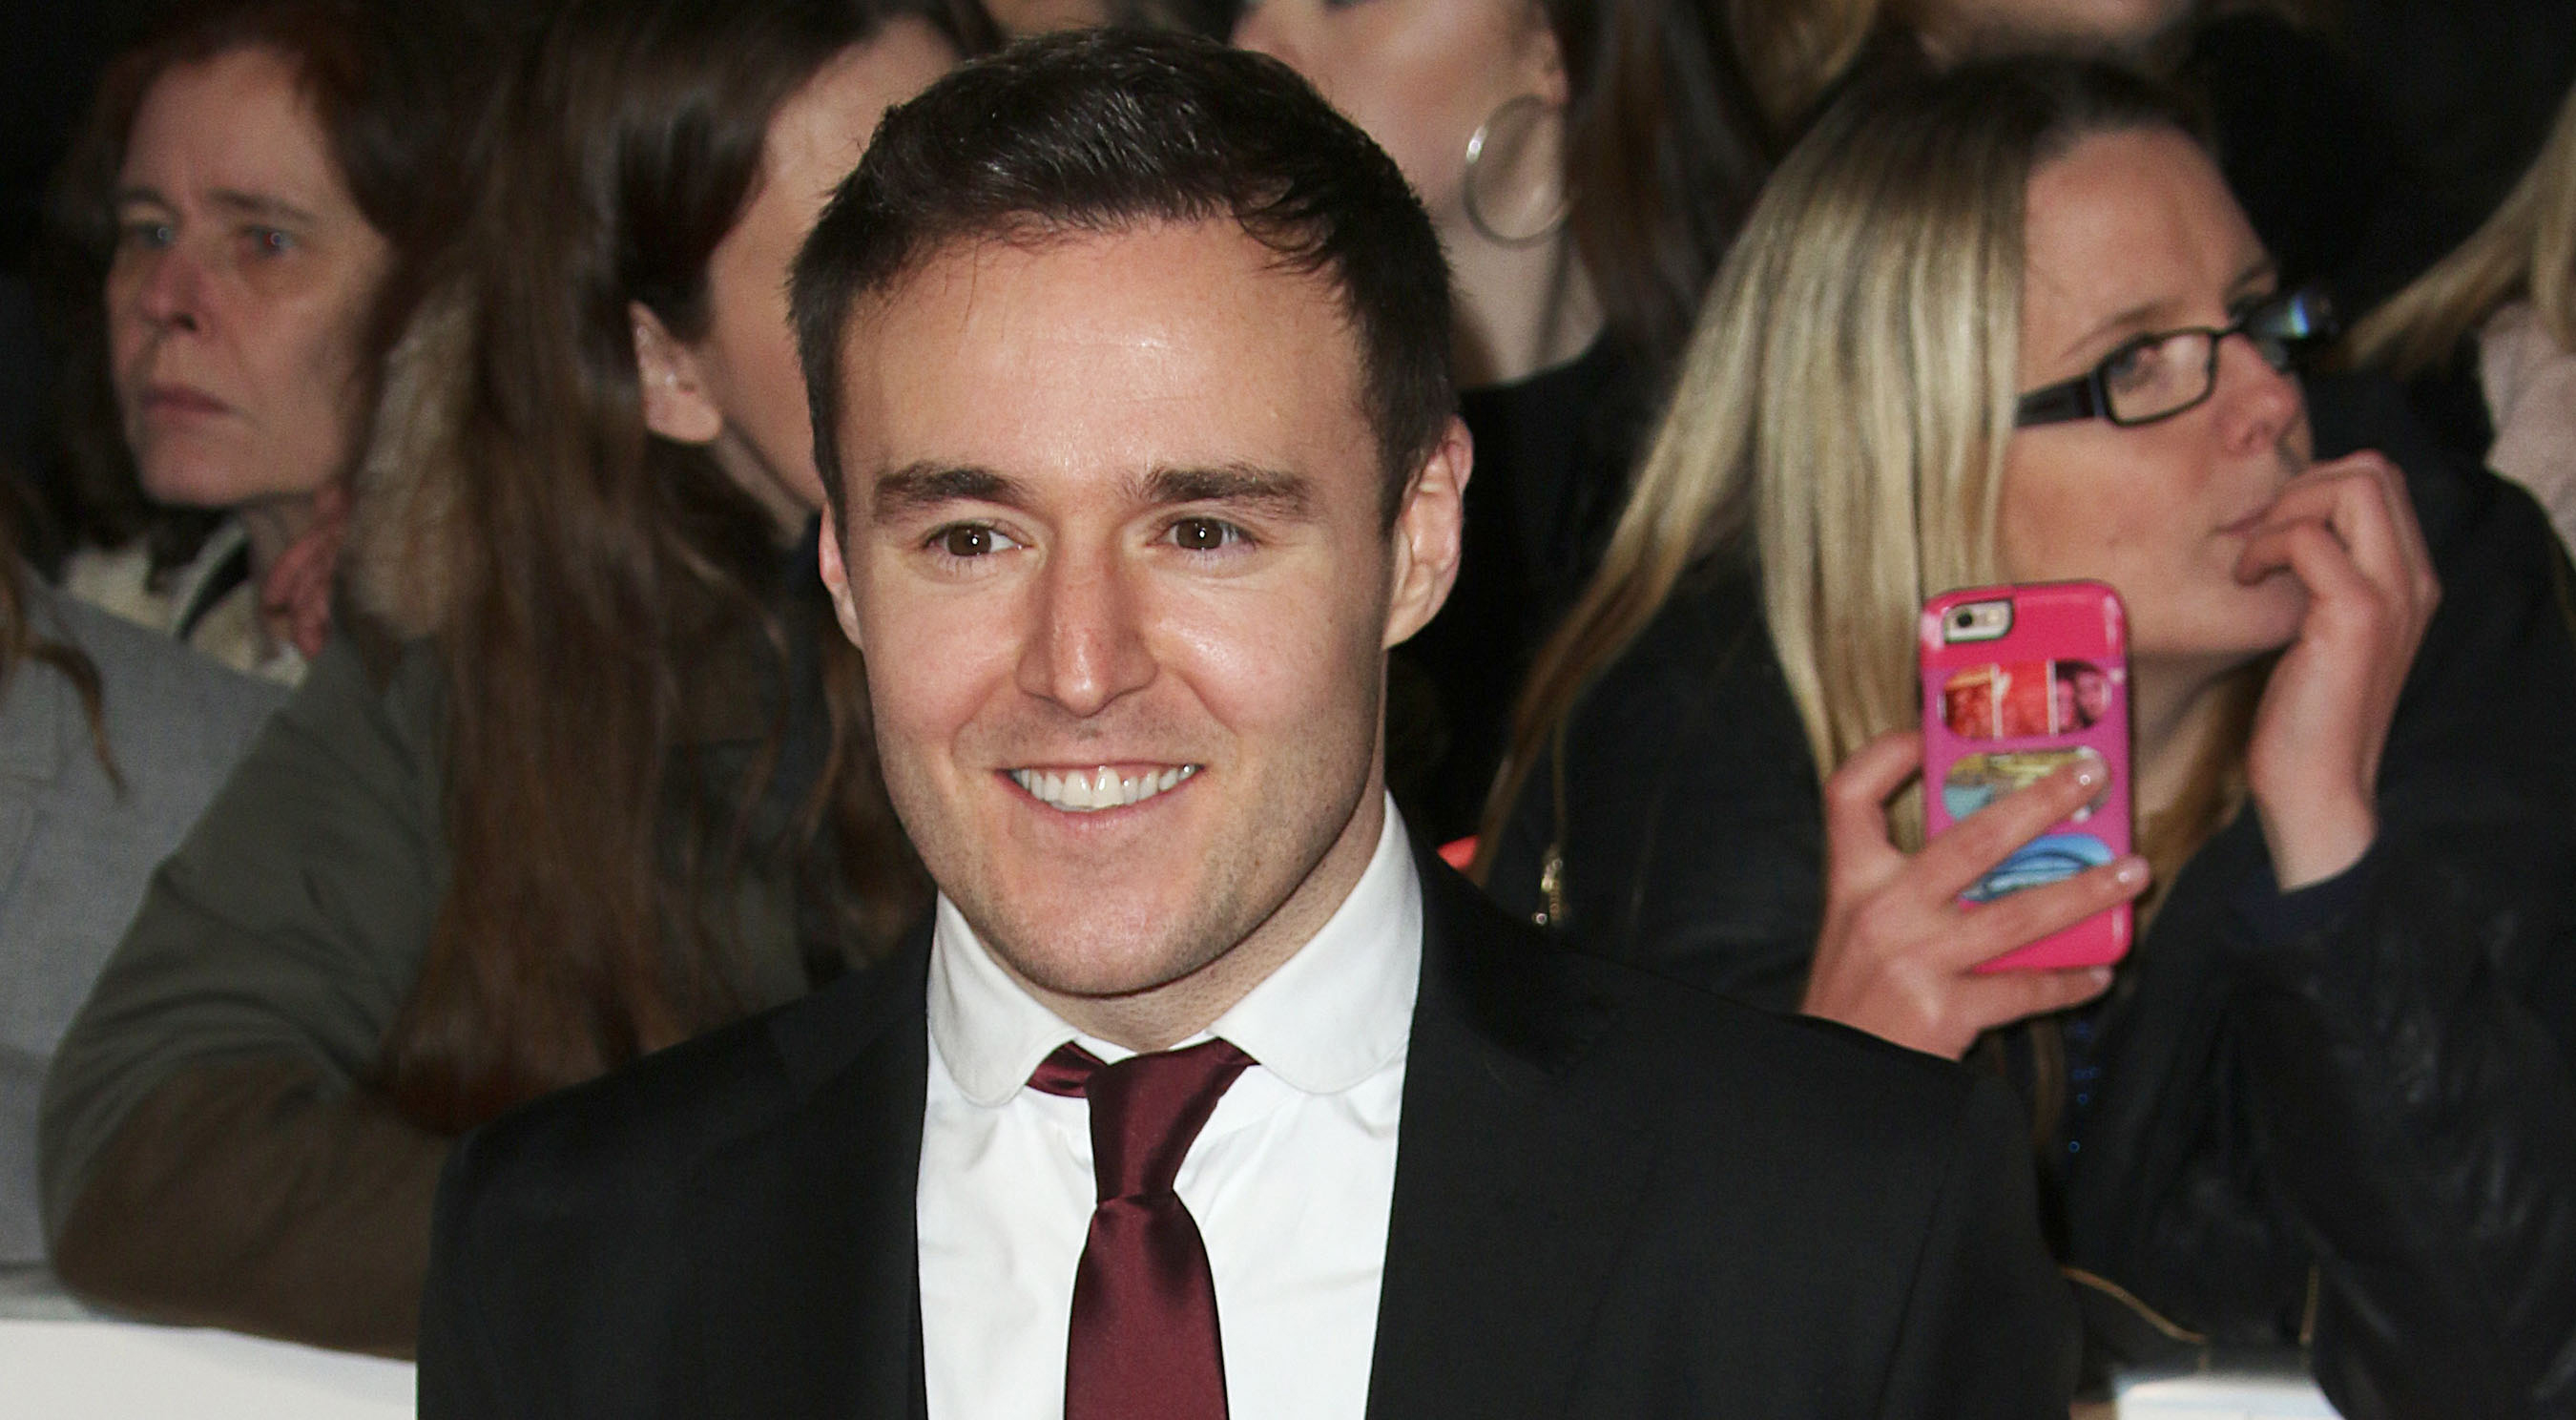 Alan Halsall shares cute date night photo with new girlfriend Tisha Merry